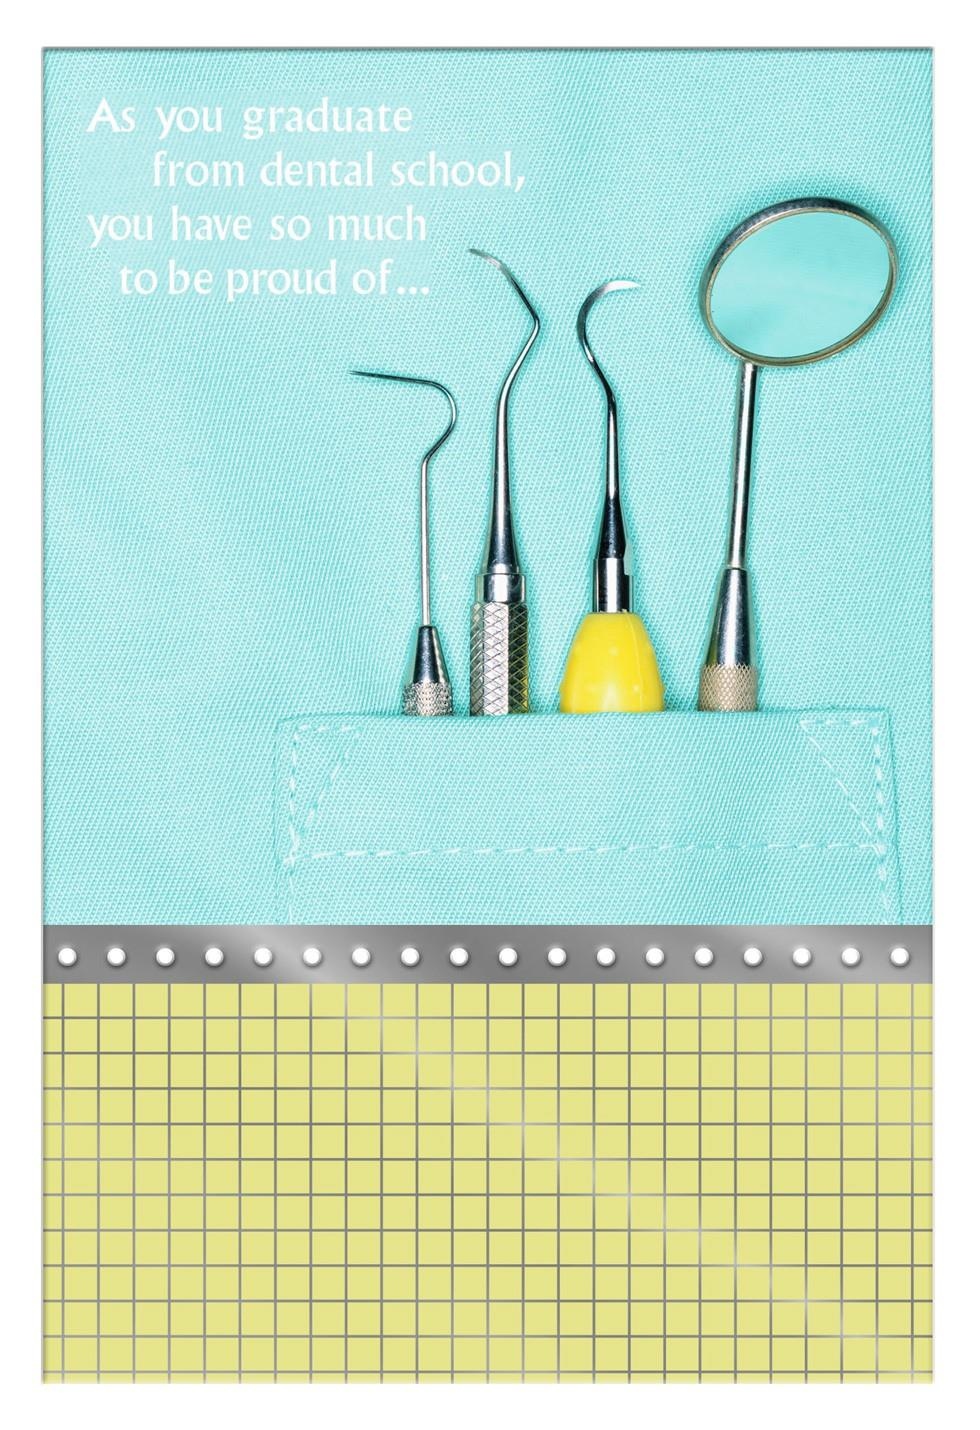 Dental School Graduation Card Greeting Cards Hallmark